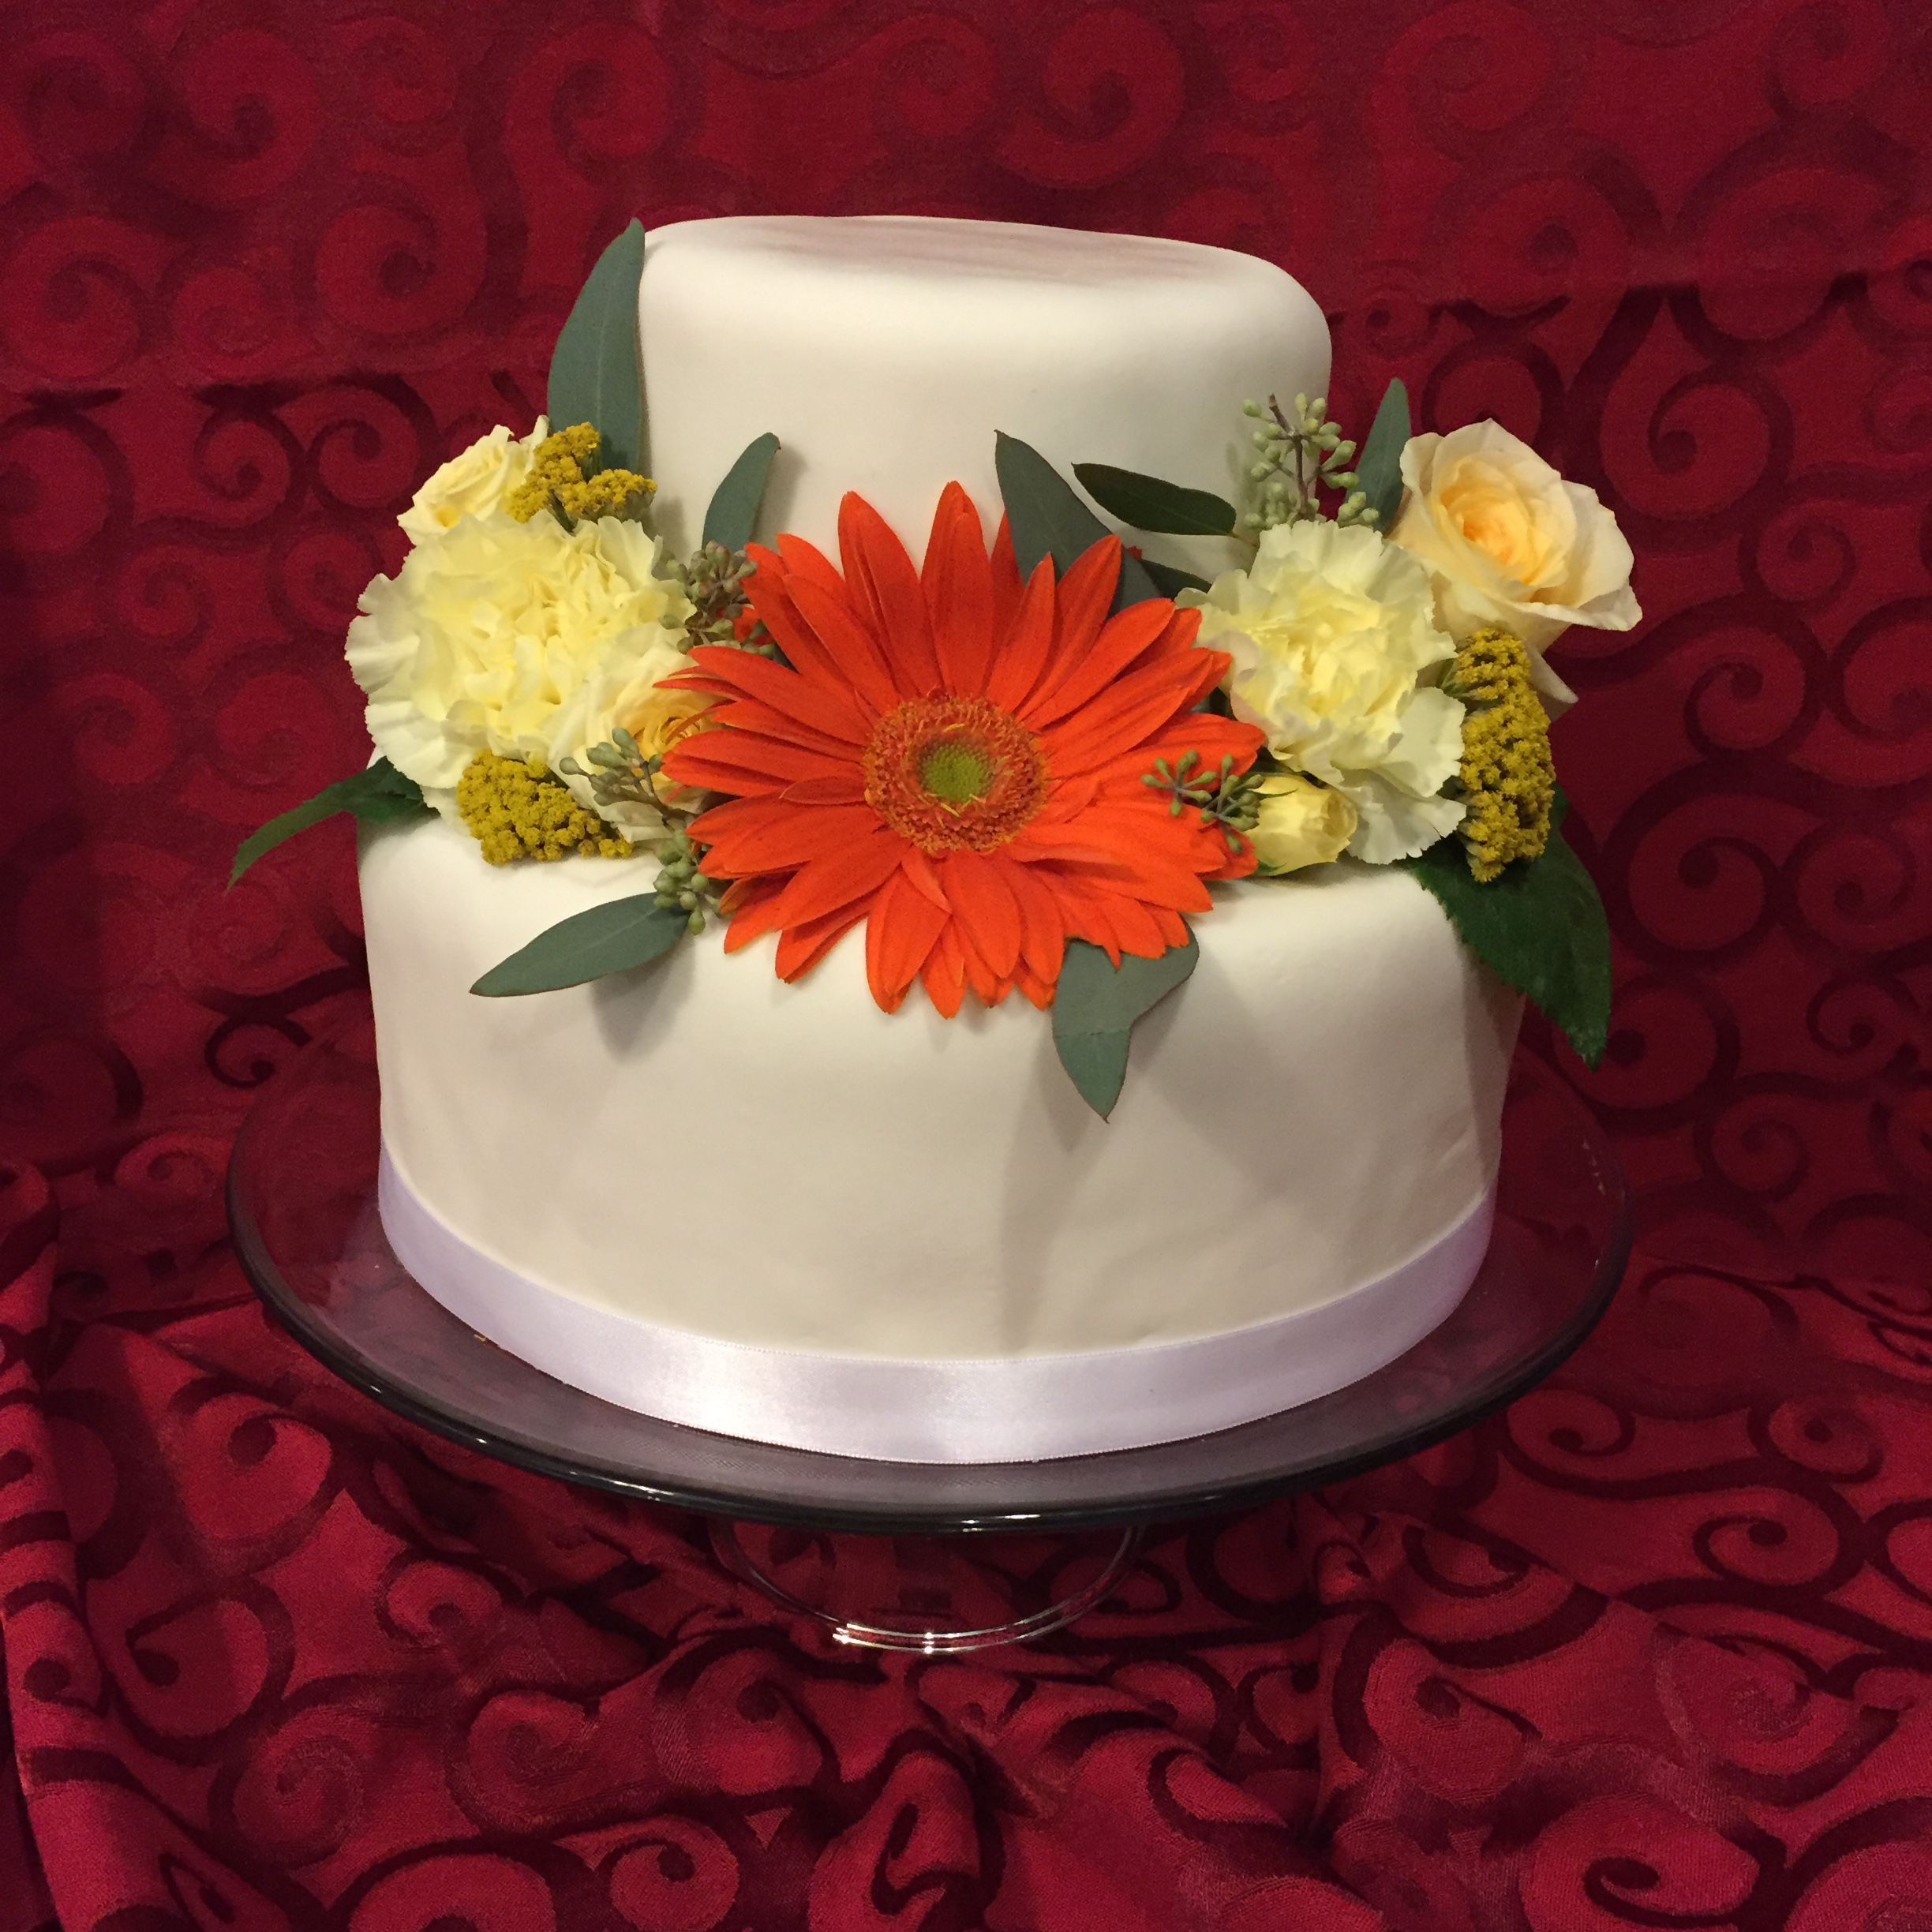 wedding cake pictures with gerbera daisies white fondant wedding cake with orange and white flowers 23449